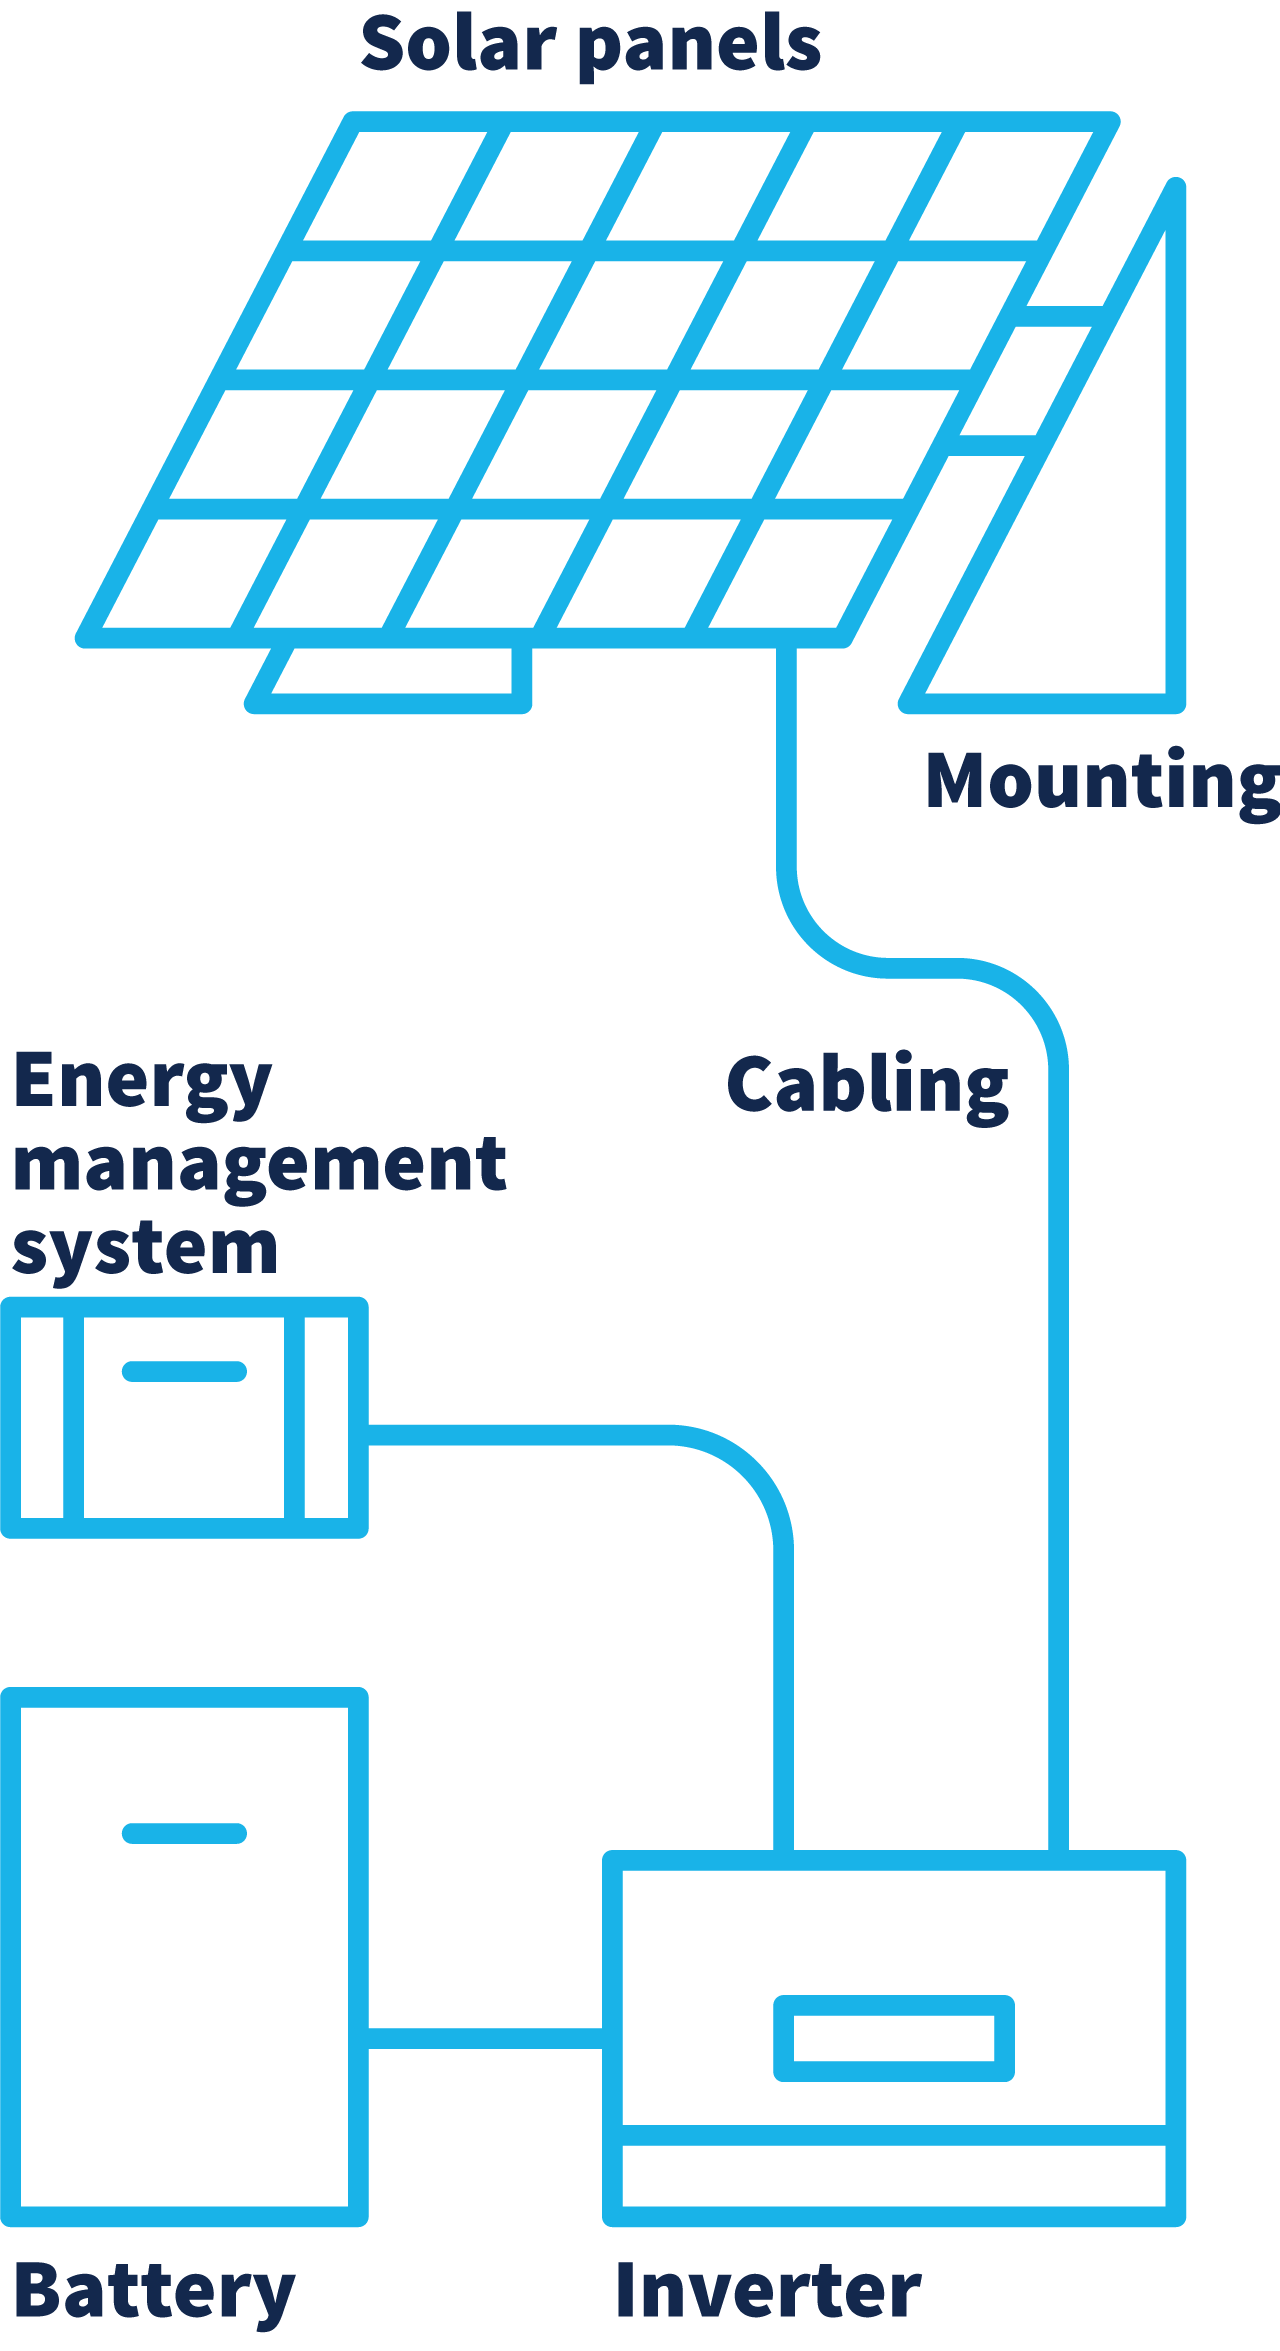 hight resolution of a diagram depicts a solar panel mounted and connected by cabling to an inverter this